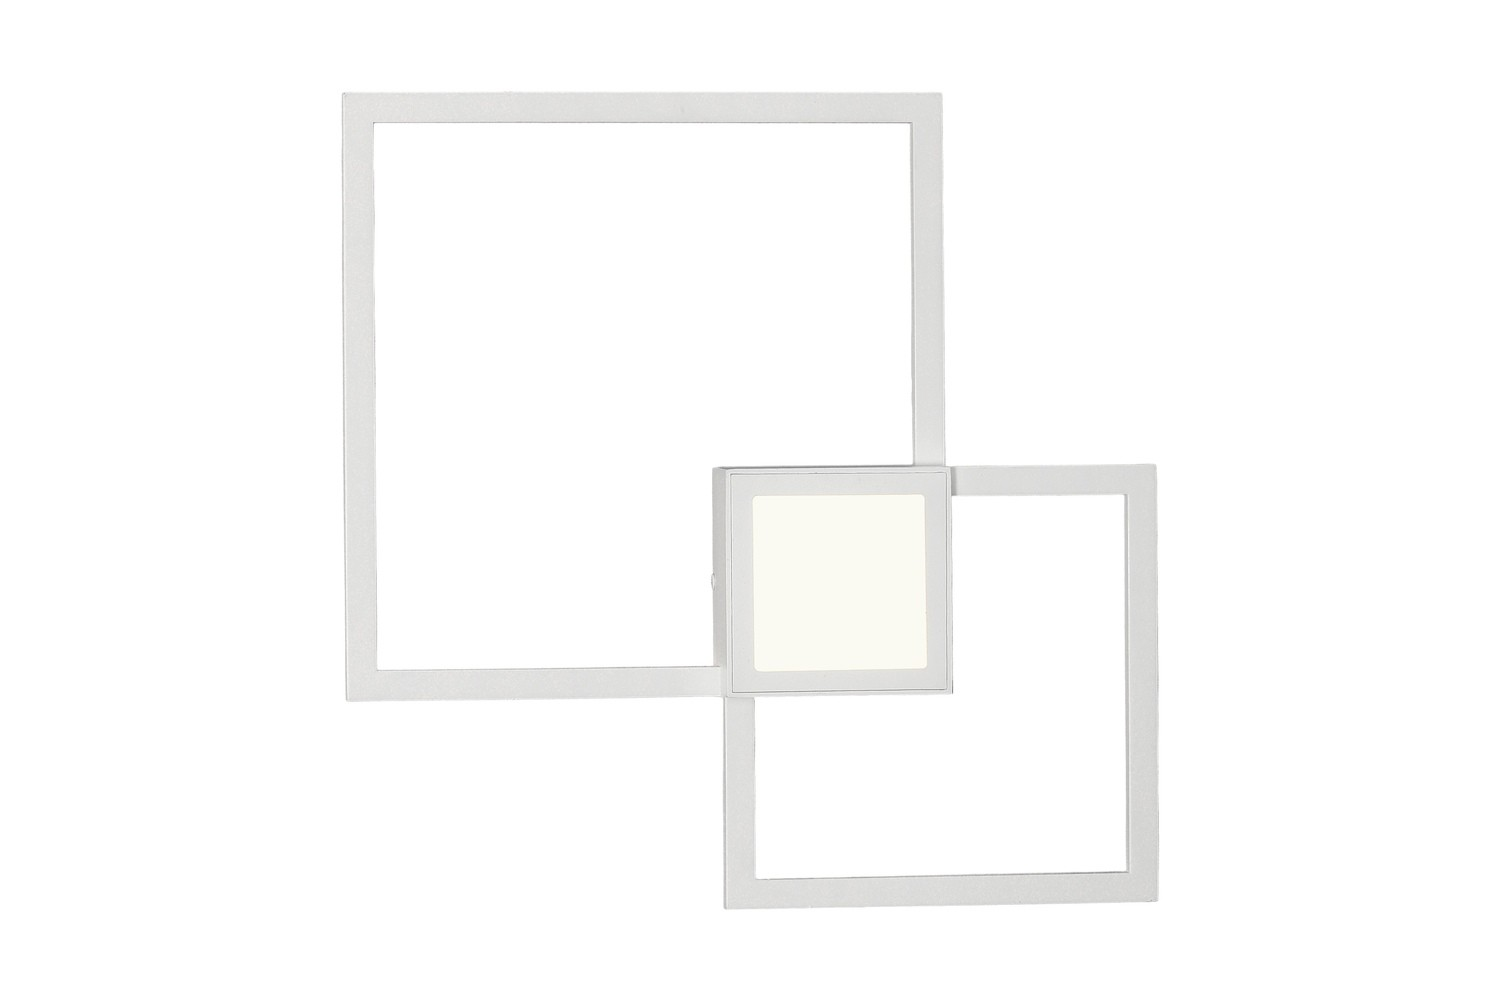 Mural Wall Lamp Squares, 24W, 3000K, 1440lm, White, 3yrs Warranty